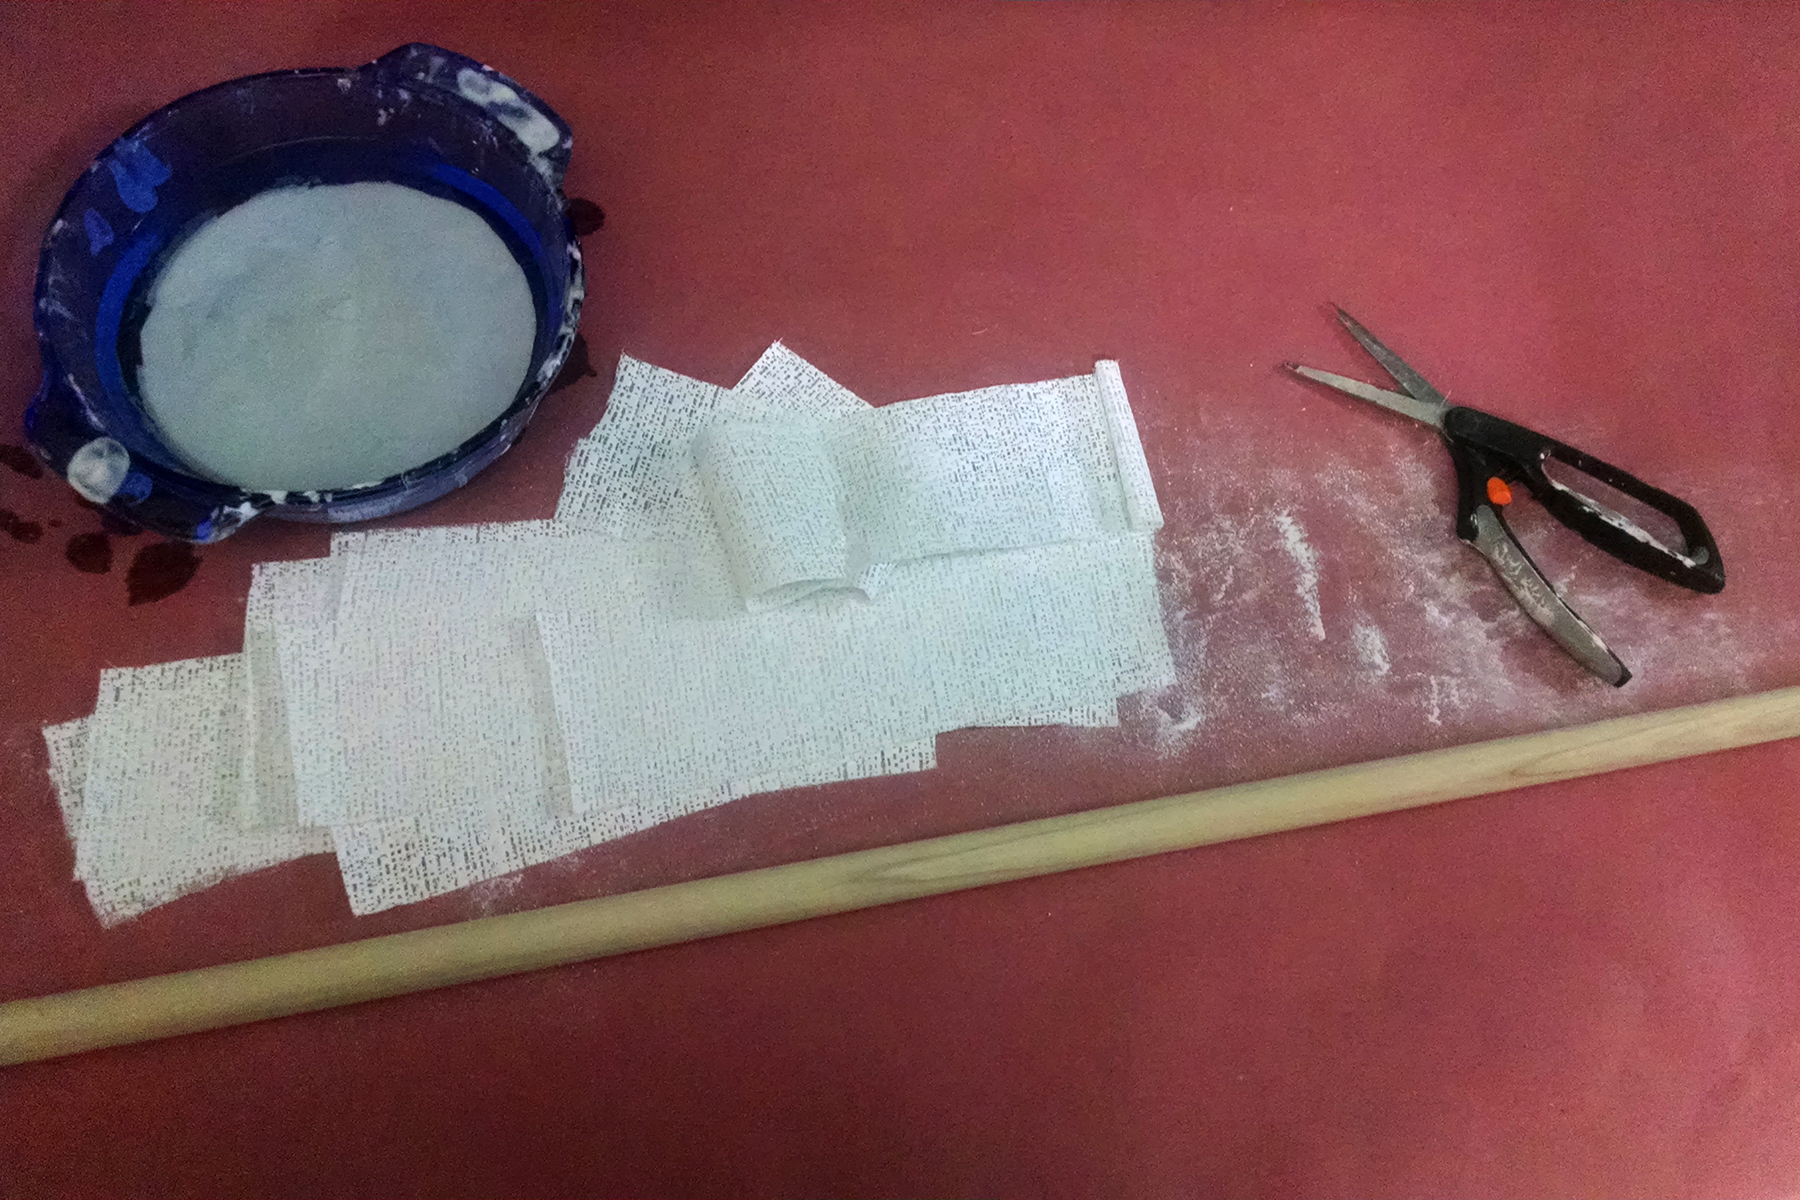 A long, wide dowel, scissors, plaster bandages, and a bowl of water on a work surface lined with pink rosin paper.